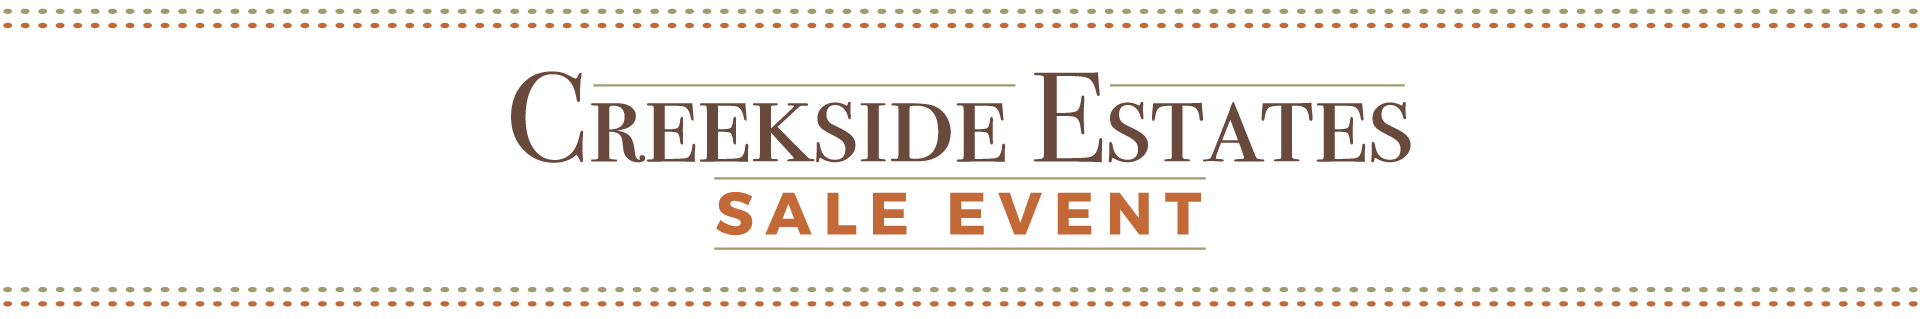 creekside_estates_sale_event